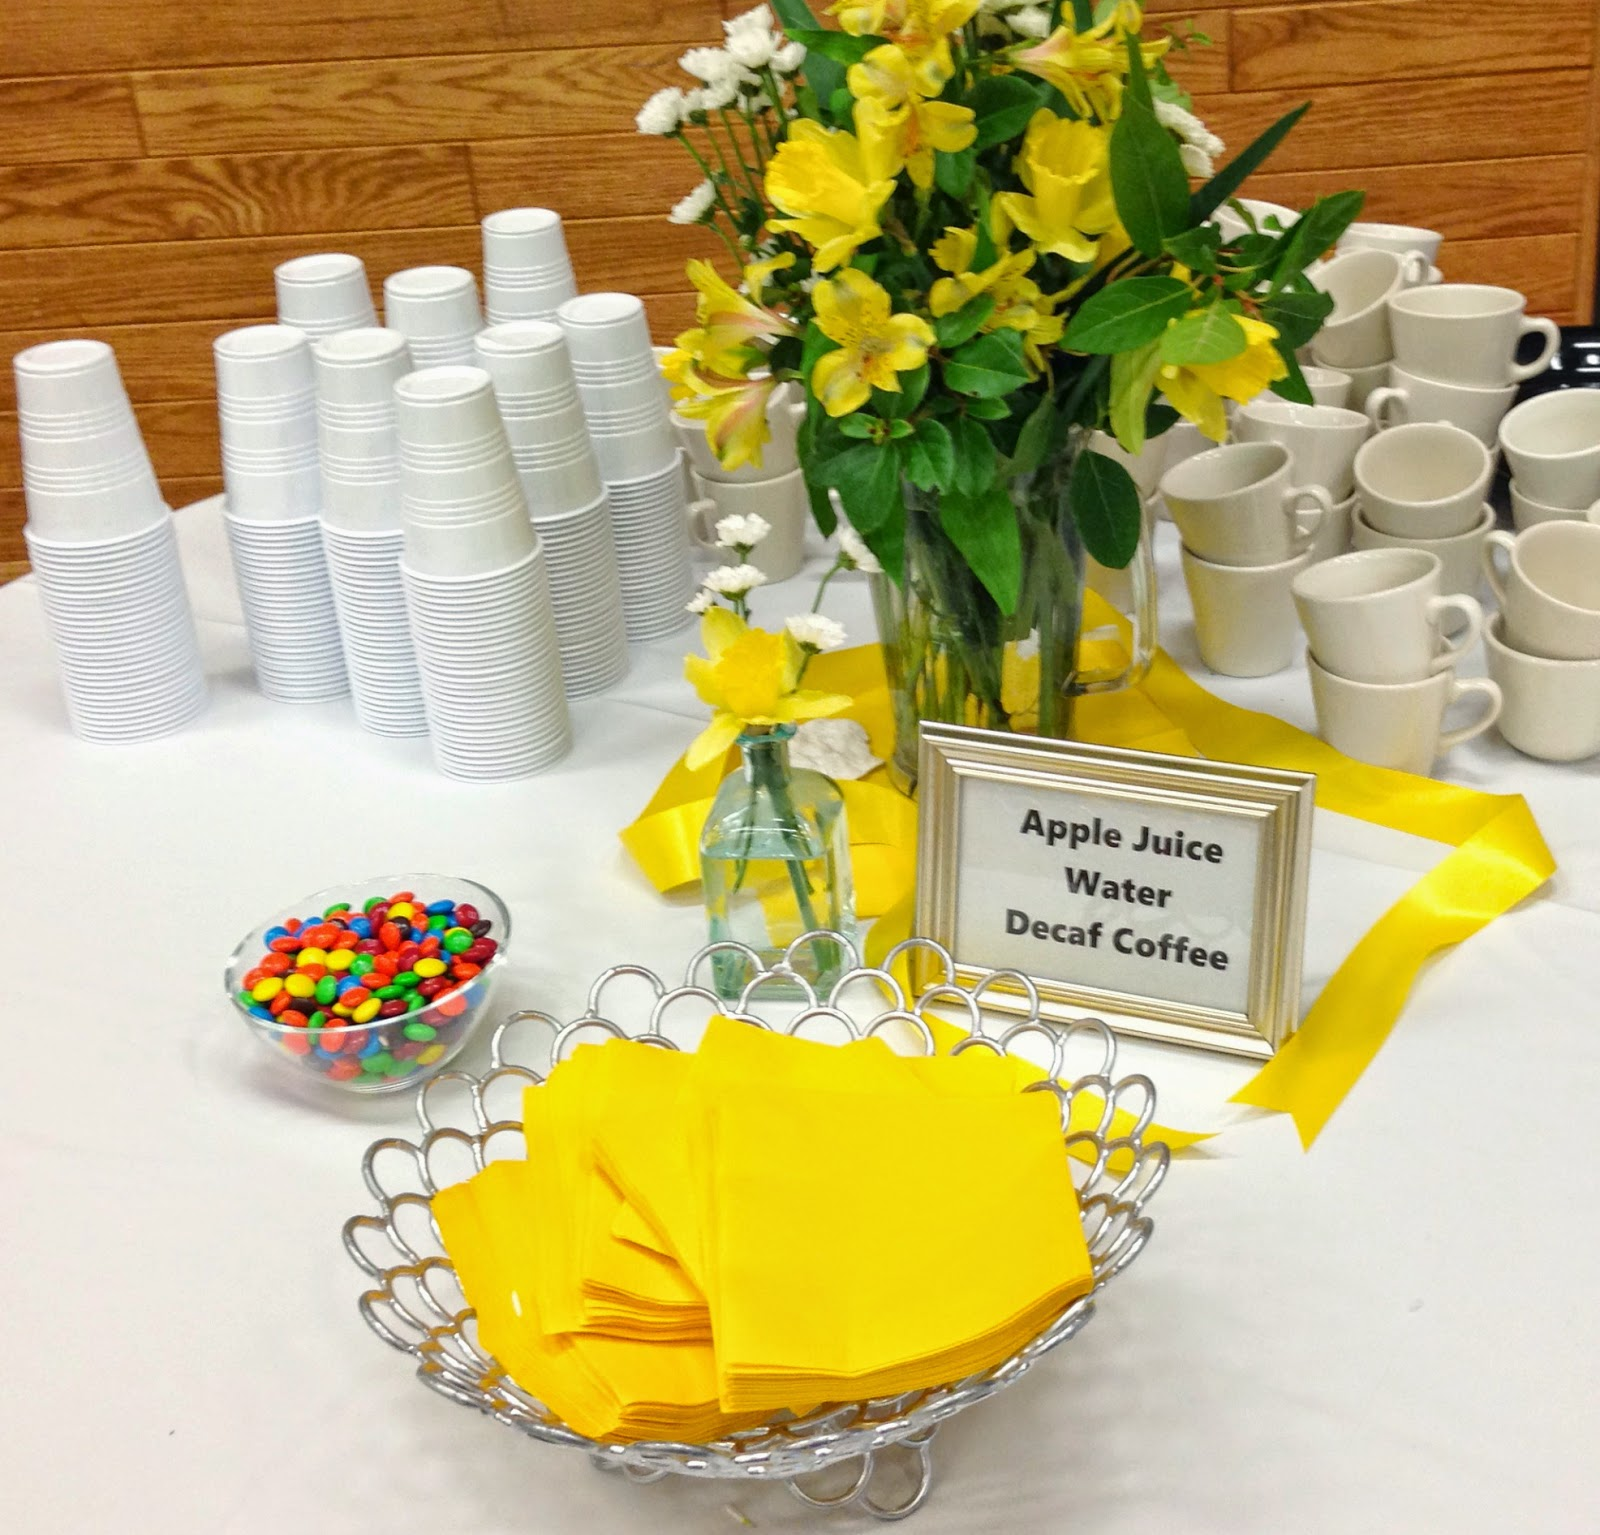 Michelle Paige Blogs: Decorating For A Celebration Of Life